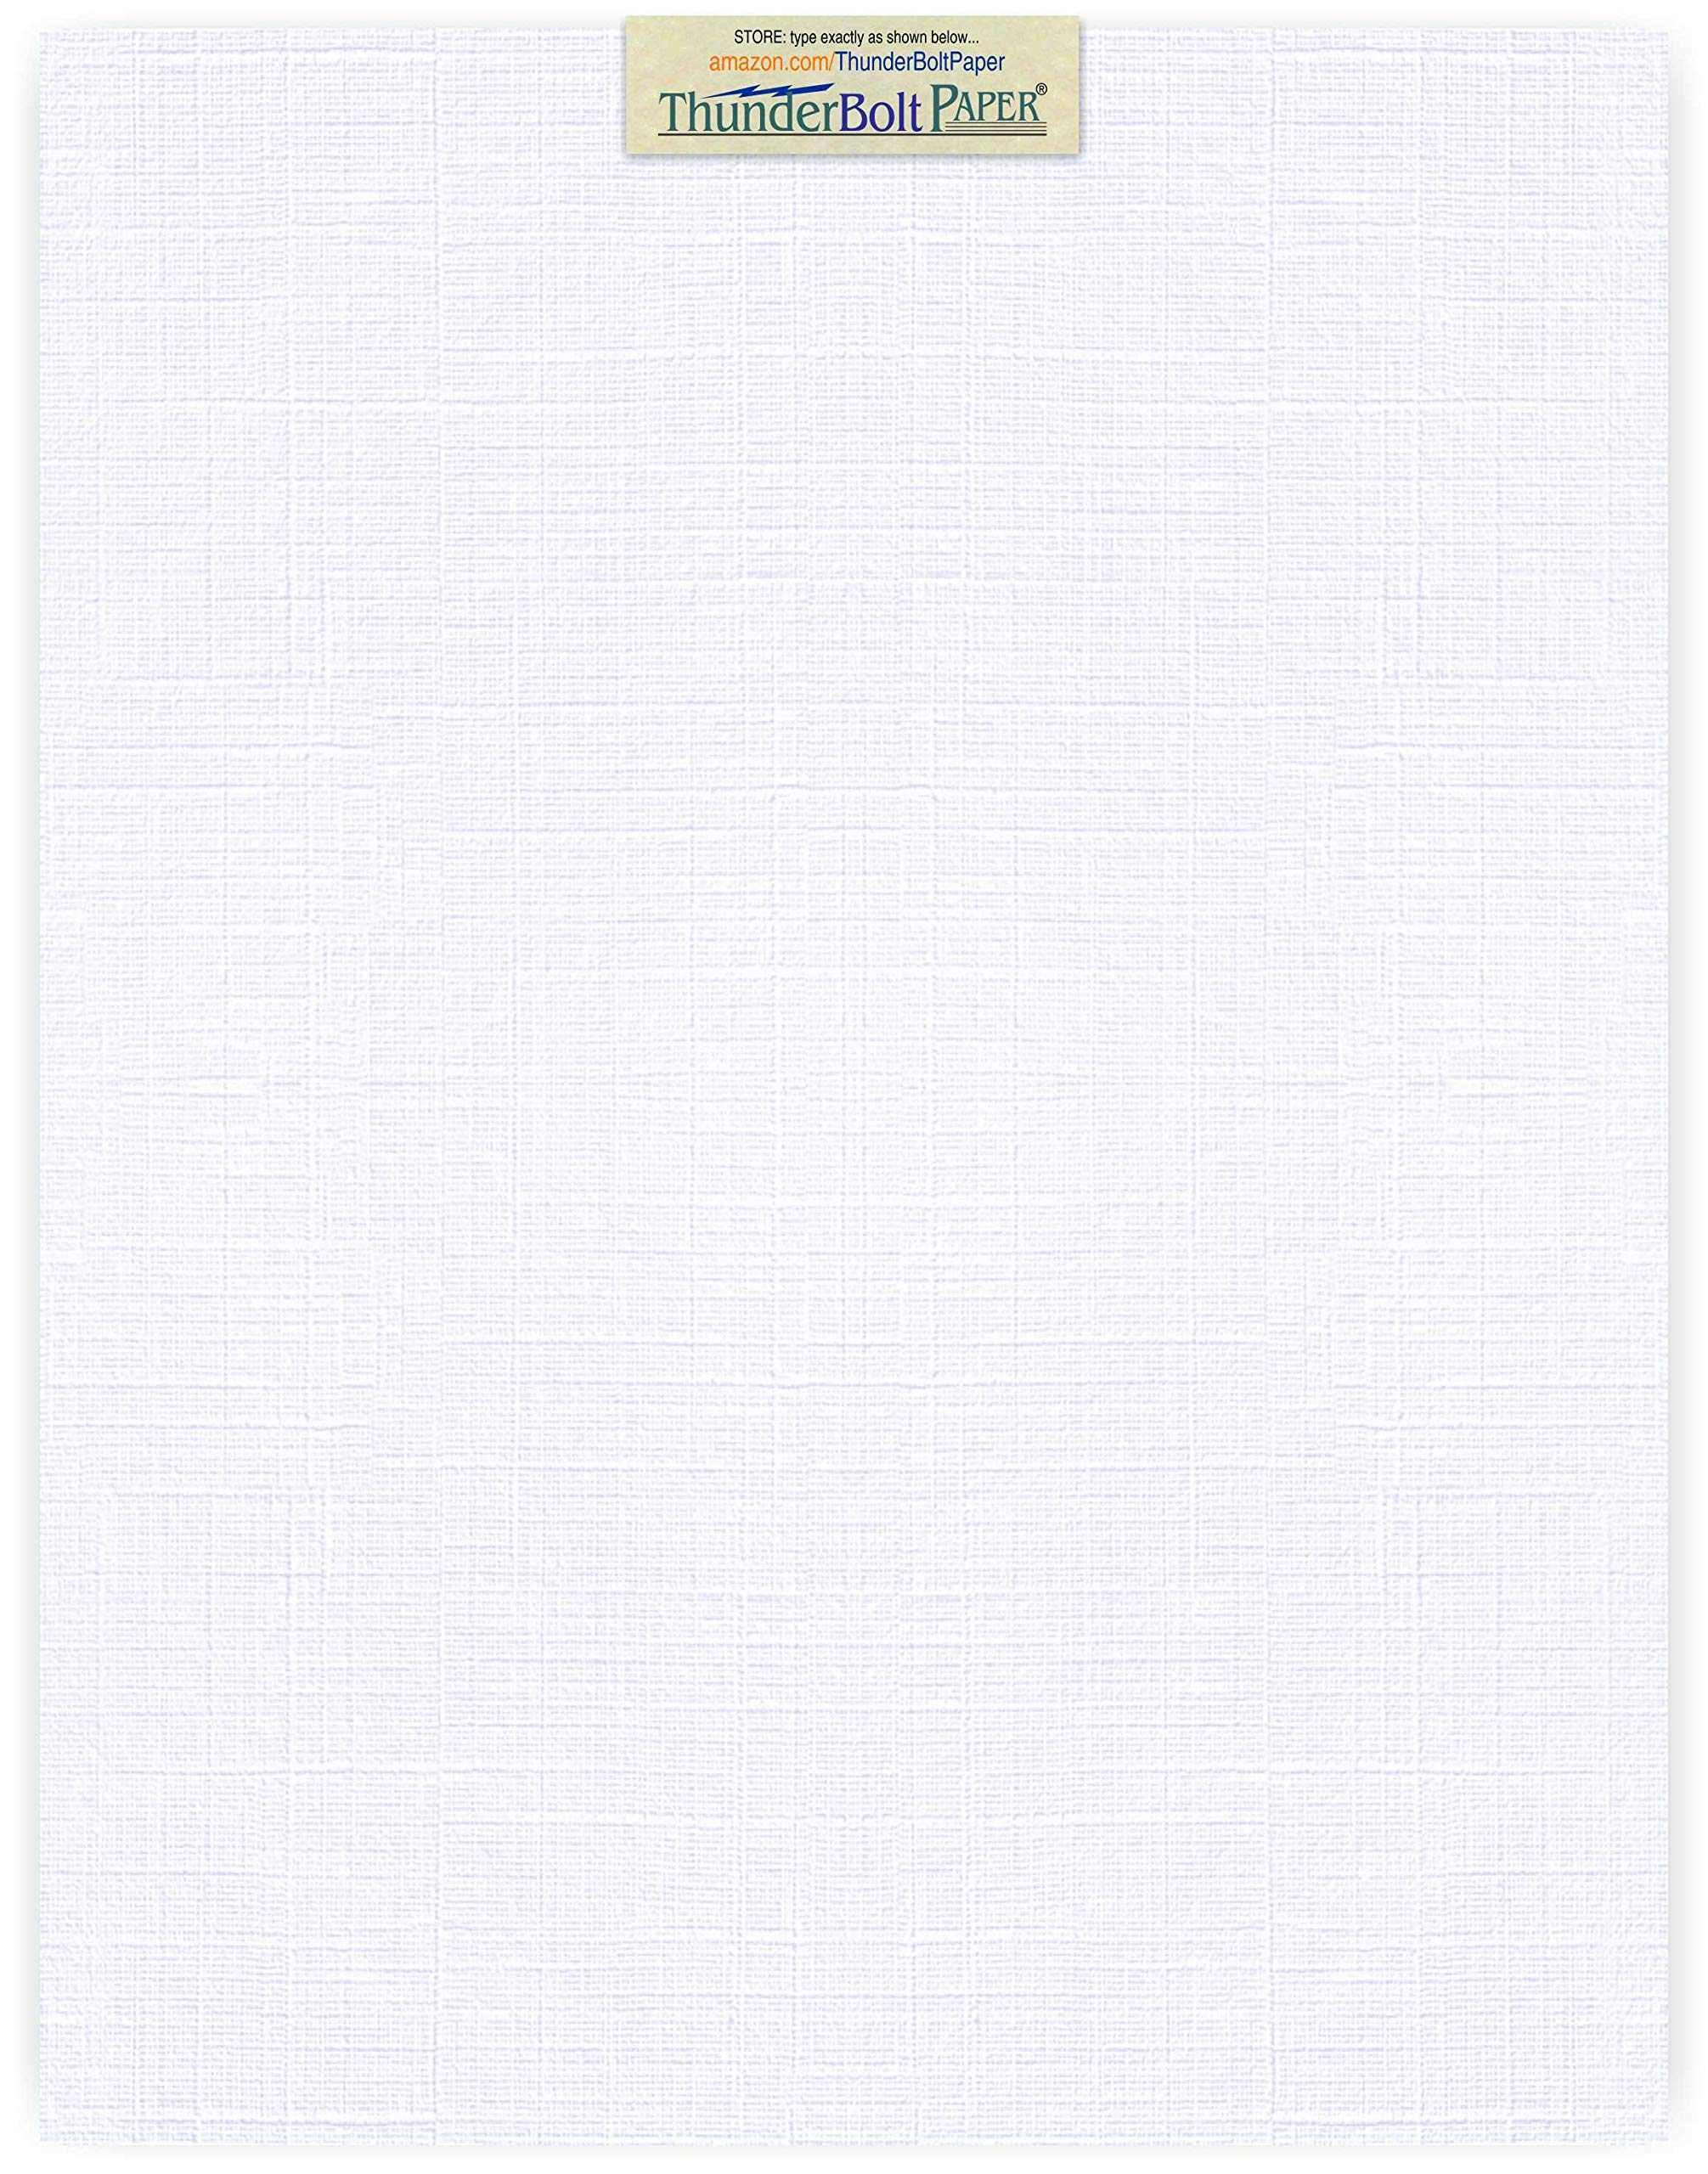 25 Bright White Linen 80# Cover Paper Sheets - 11'' X 14'' (11X14 Inches) Scrapbook|Picture-Frame Size - 80 lb/Pound Card Weight - Fine Linen Textured Finish Cardstock